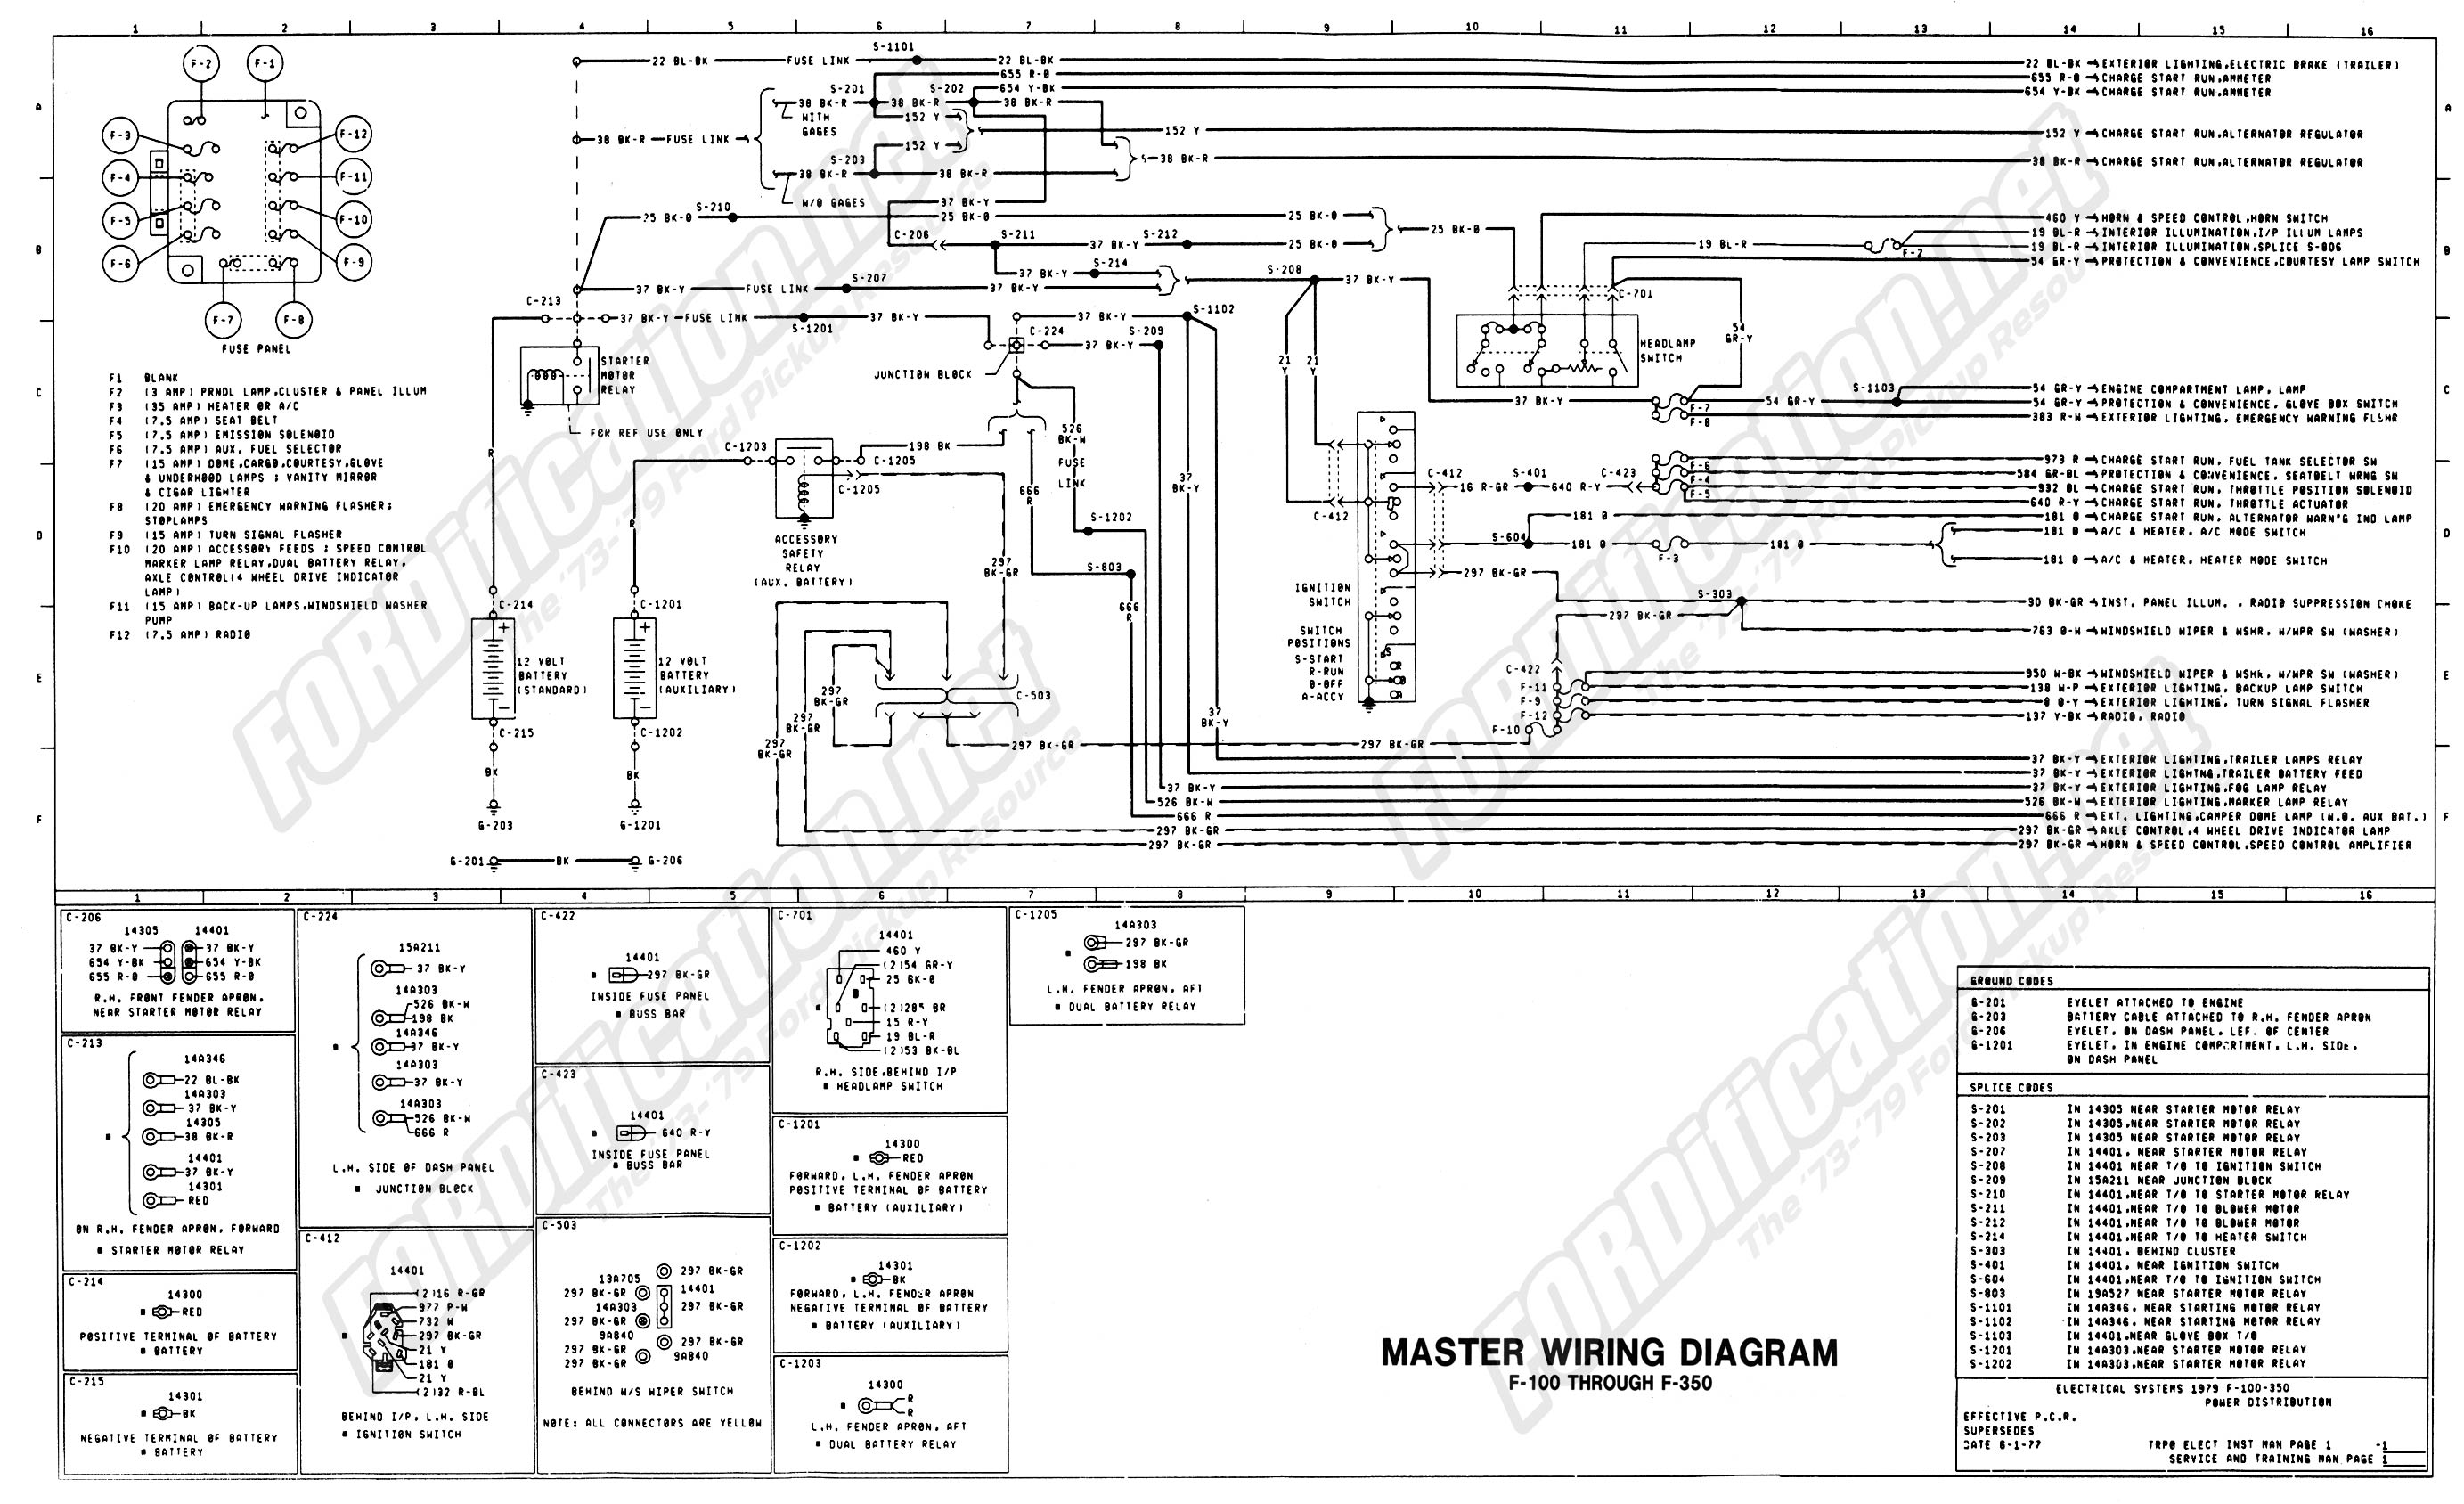 wiring_79master_1of9 1973 1979 ford truck wiring diagrams & schematics fordification net wiring diagrams for 2017 ford trucks at webbmarketing.co